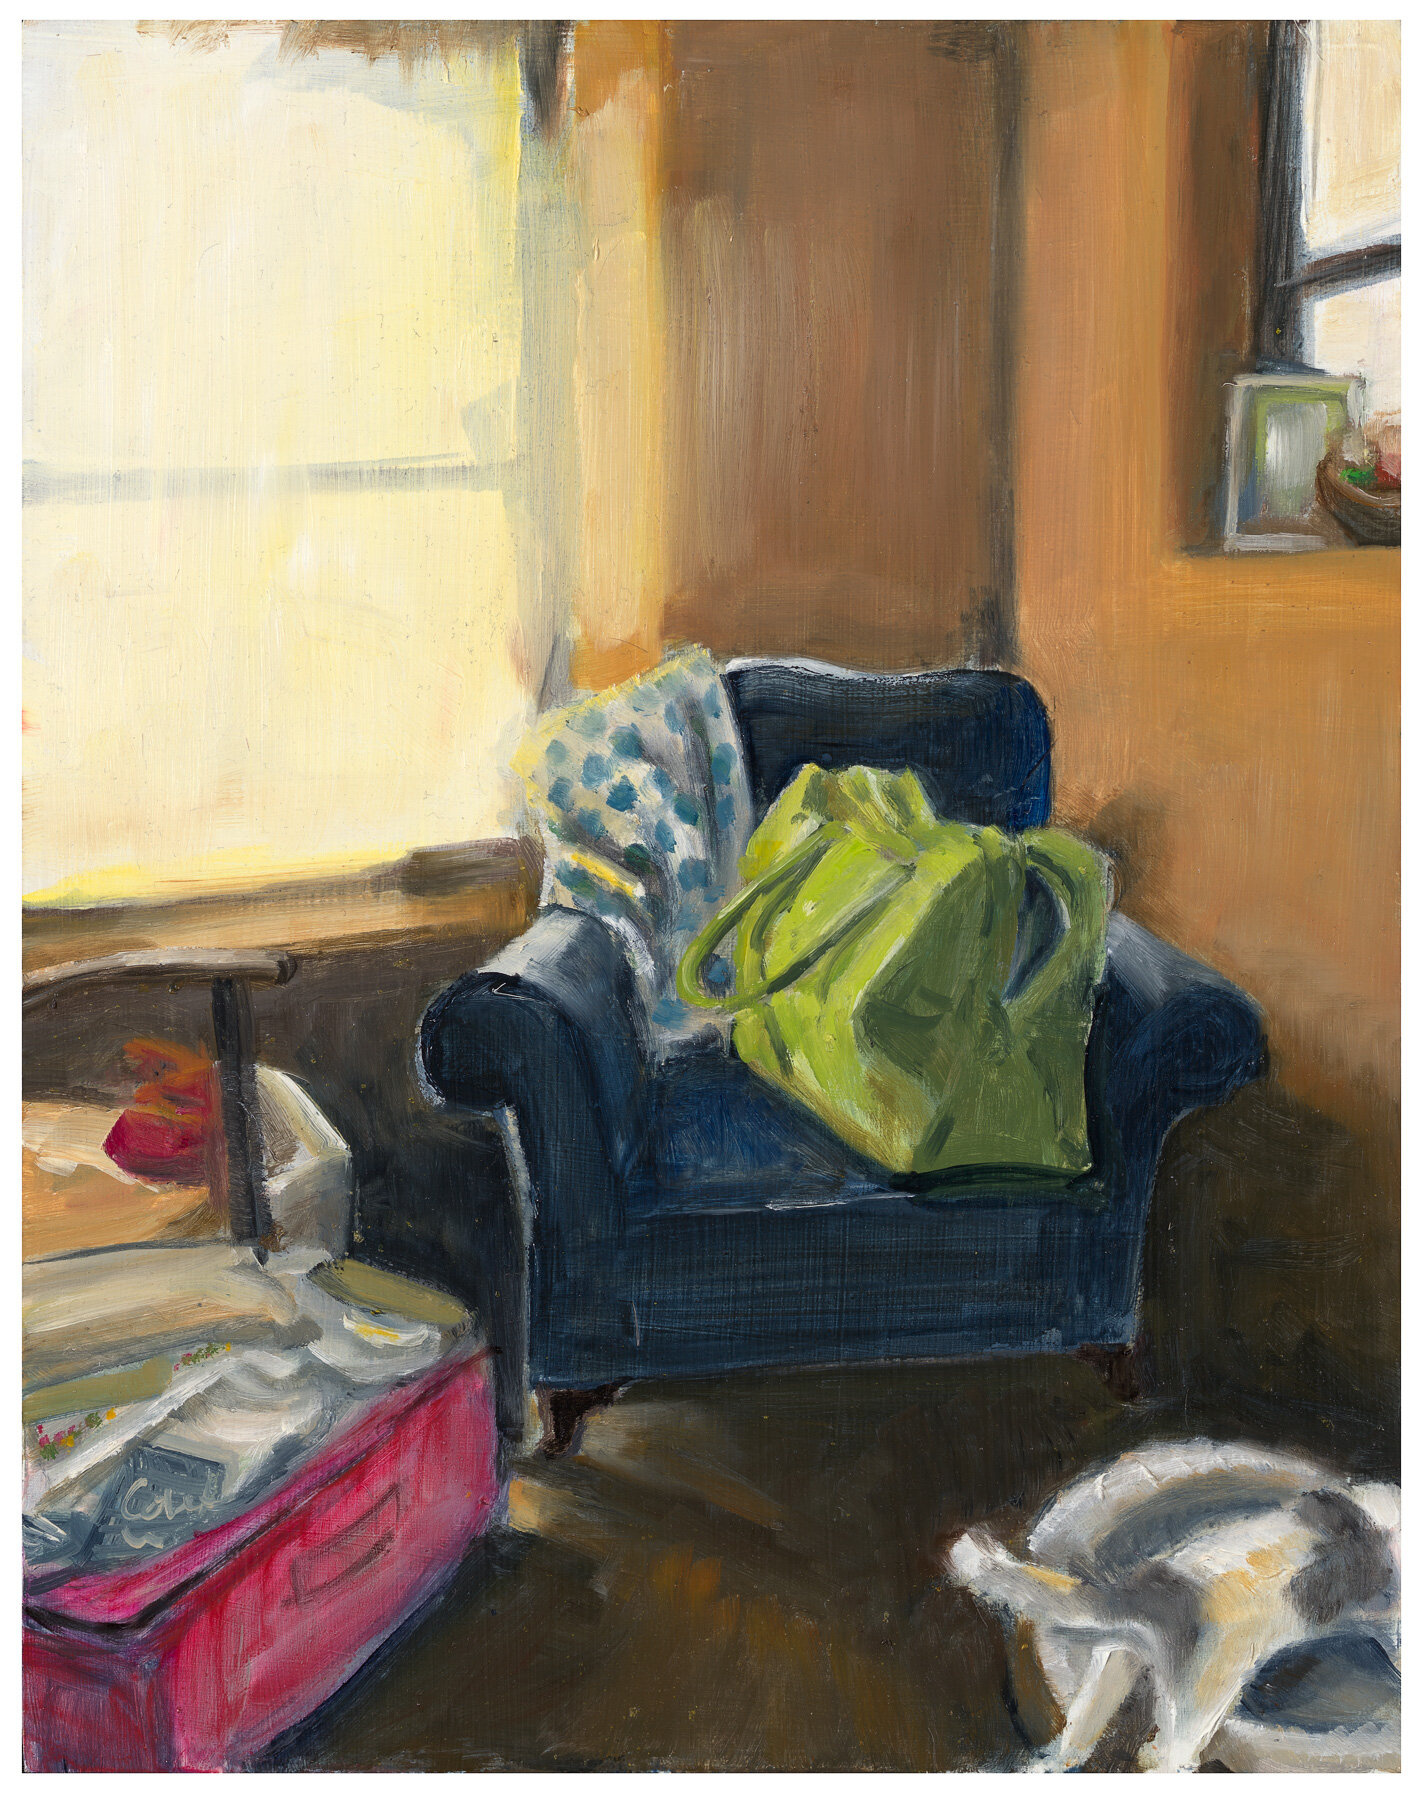 'Corner of the room' oil on canvas 2018.